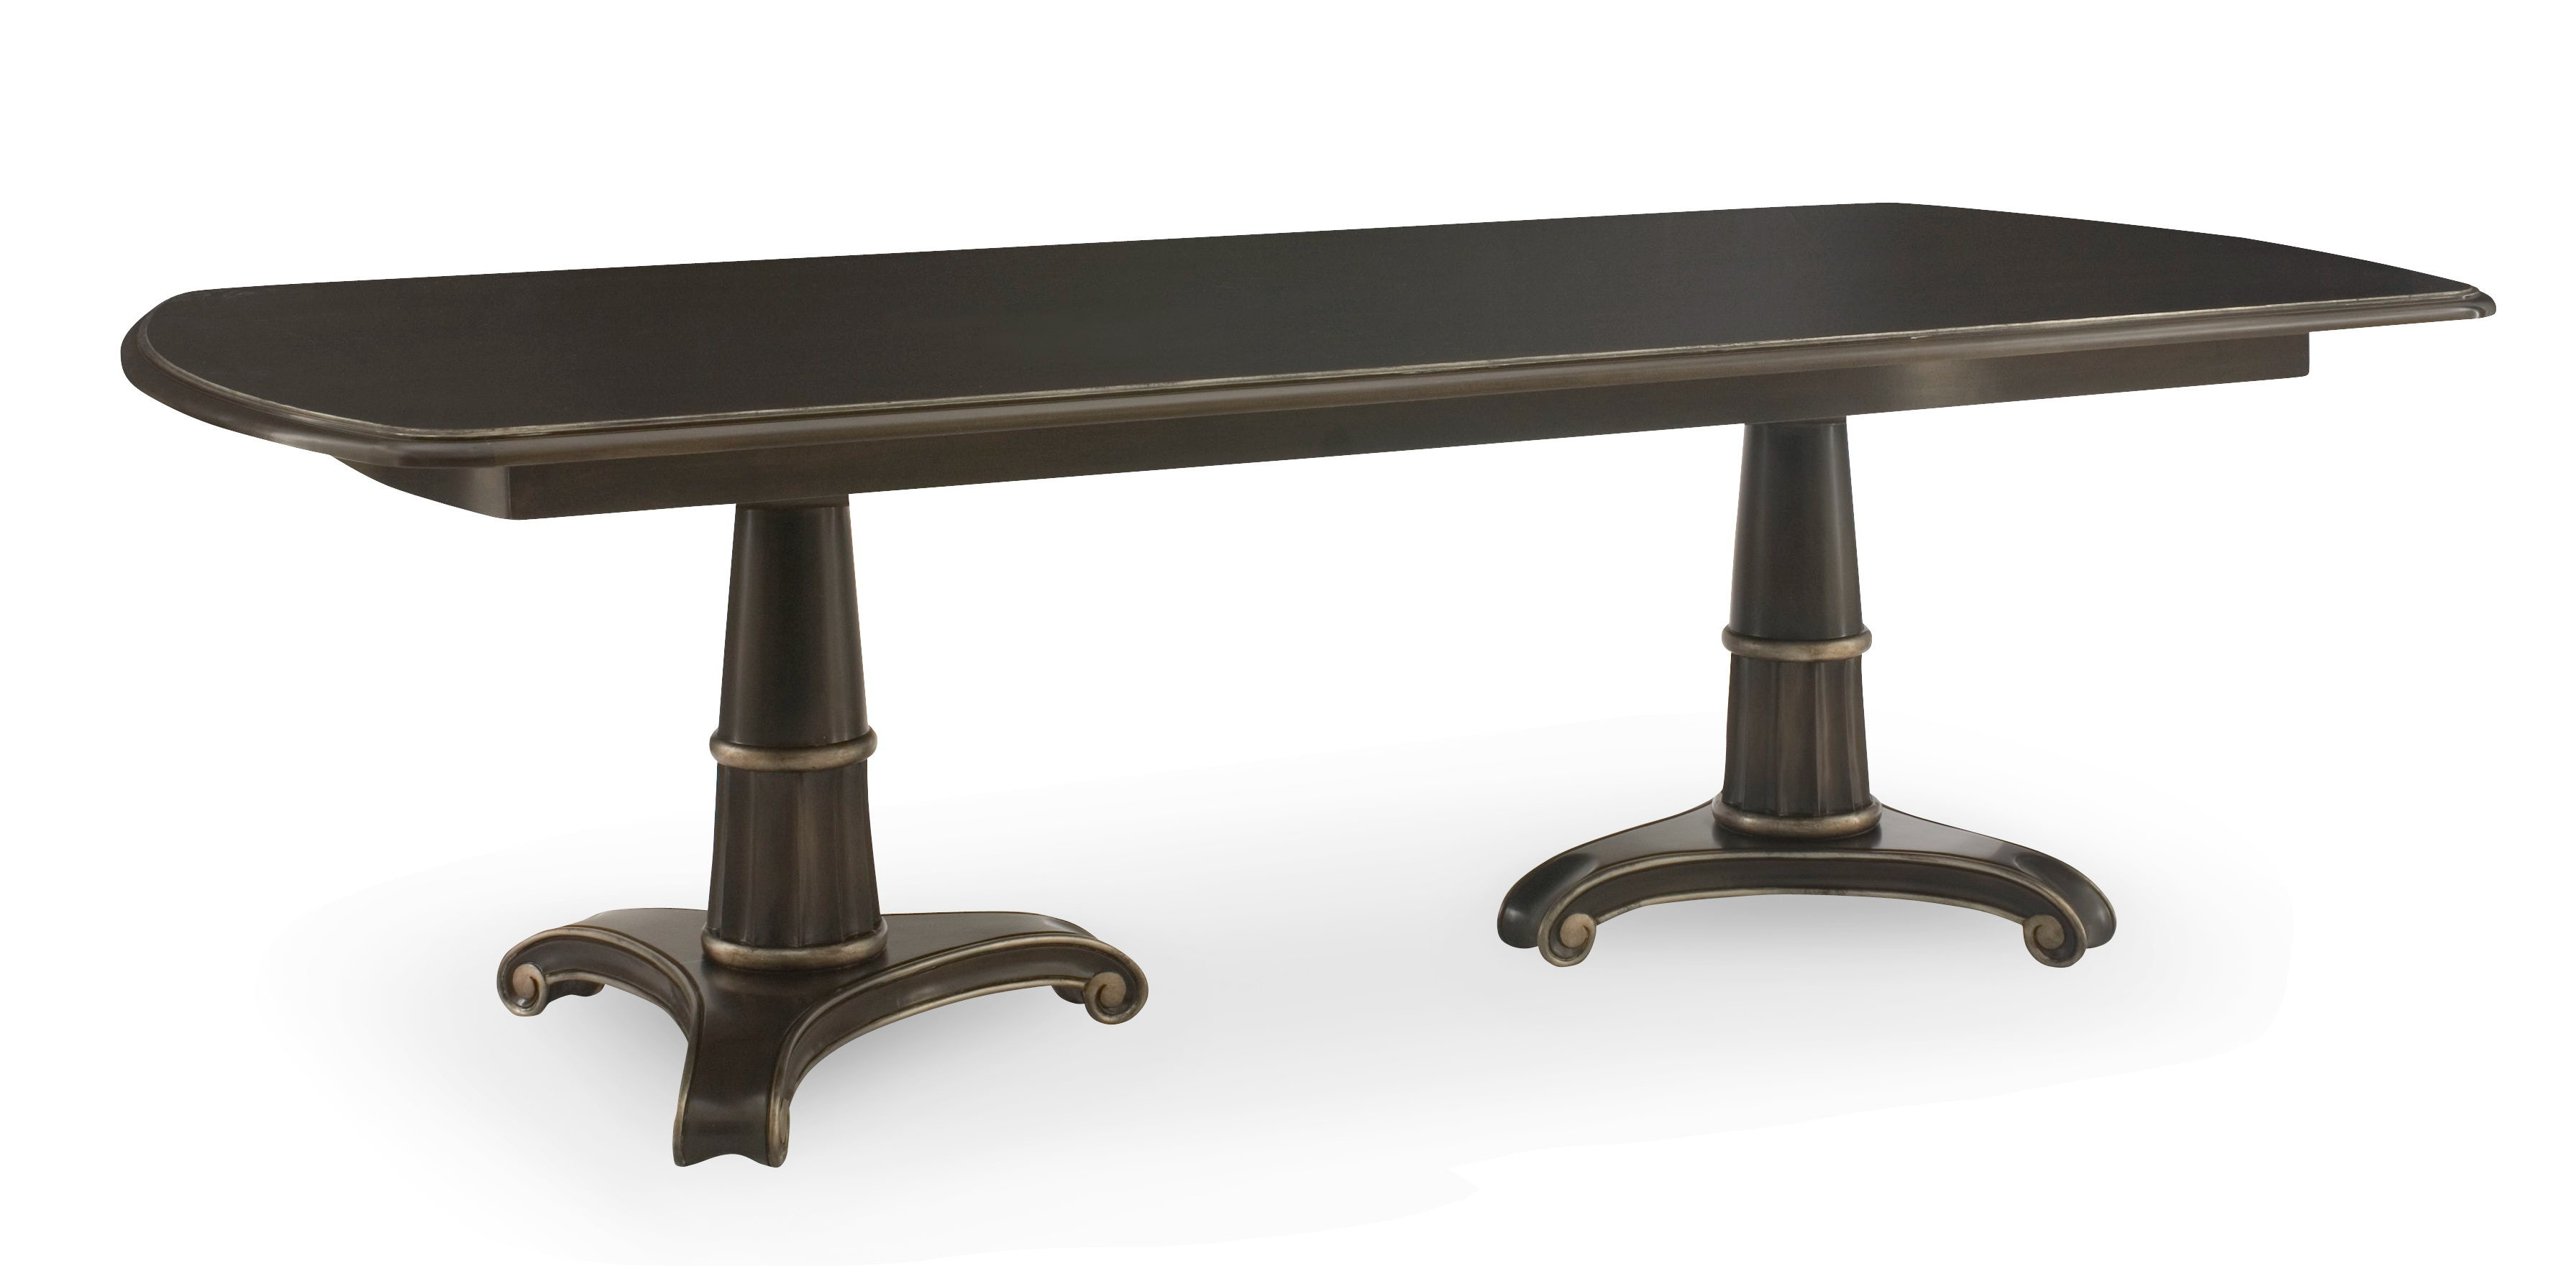 Chaddock Lucera Double Pedestal Dining Table 954 19